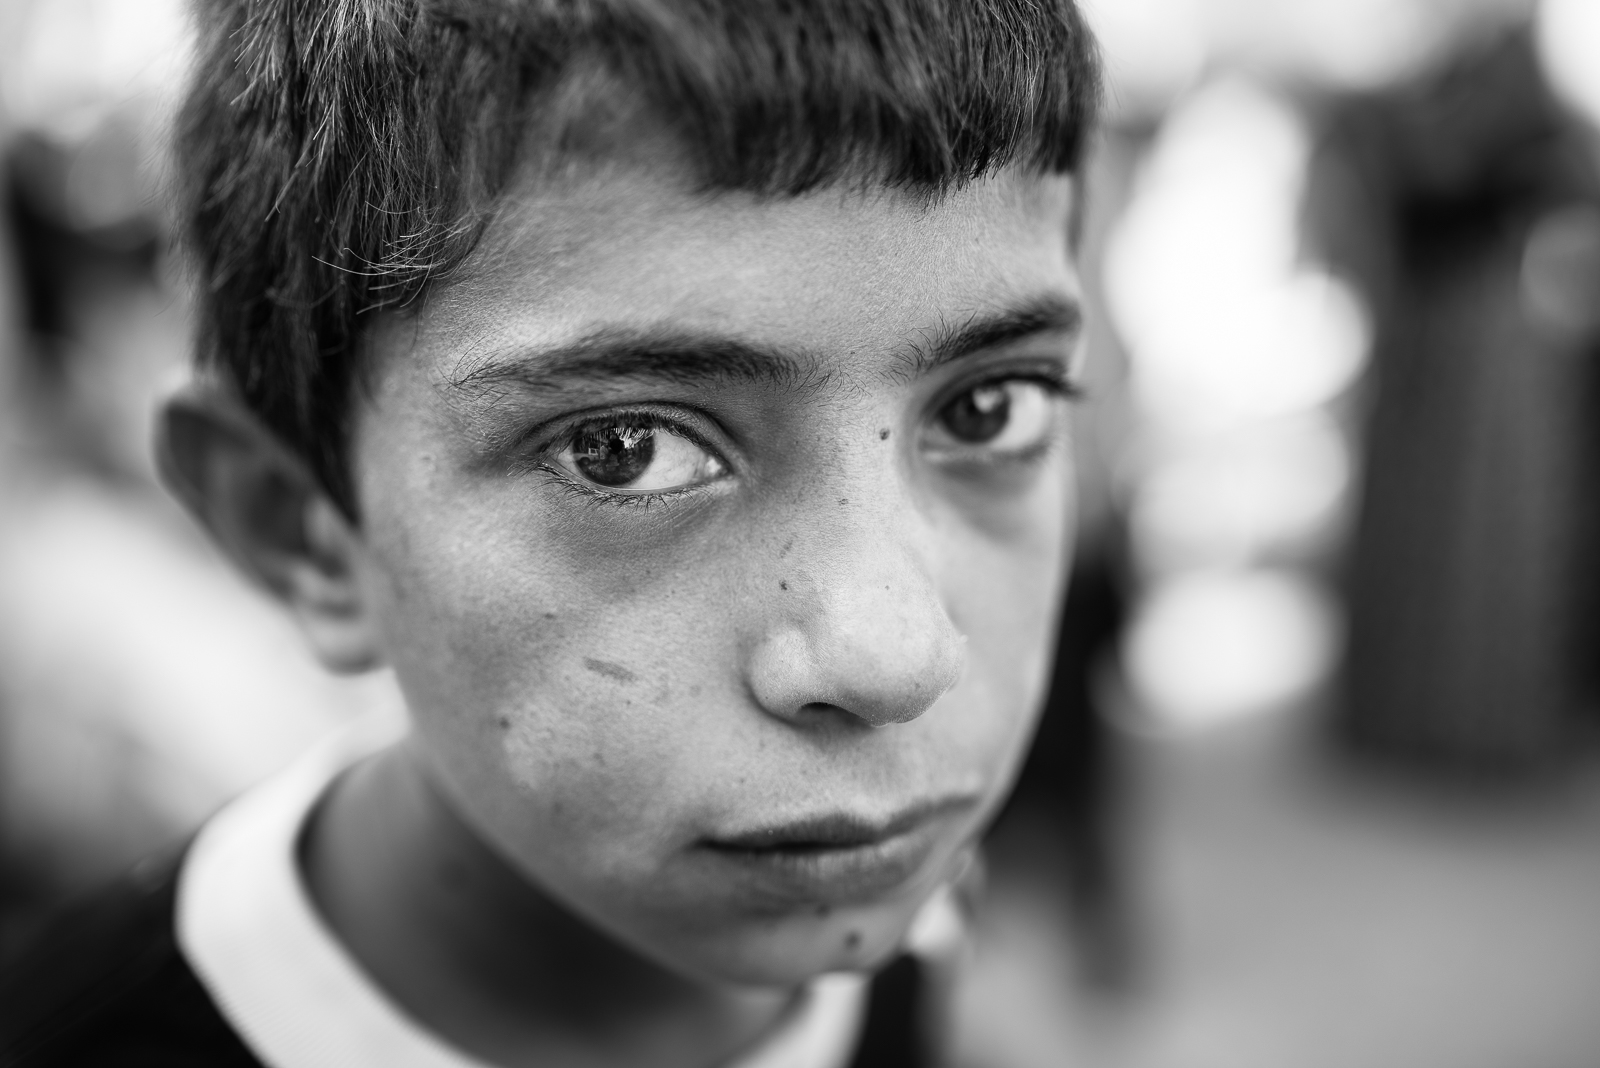 Portrait from the streets of Zakho